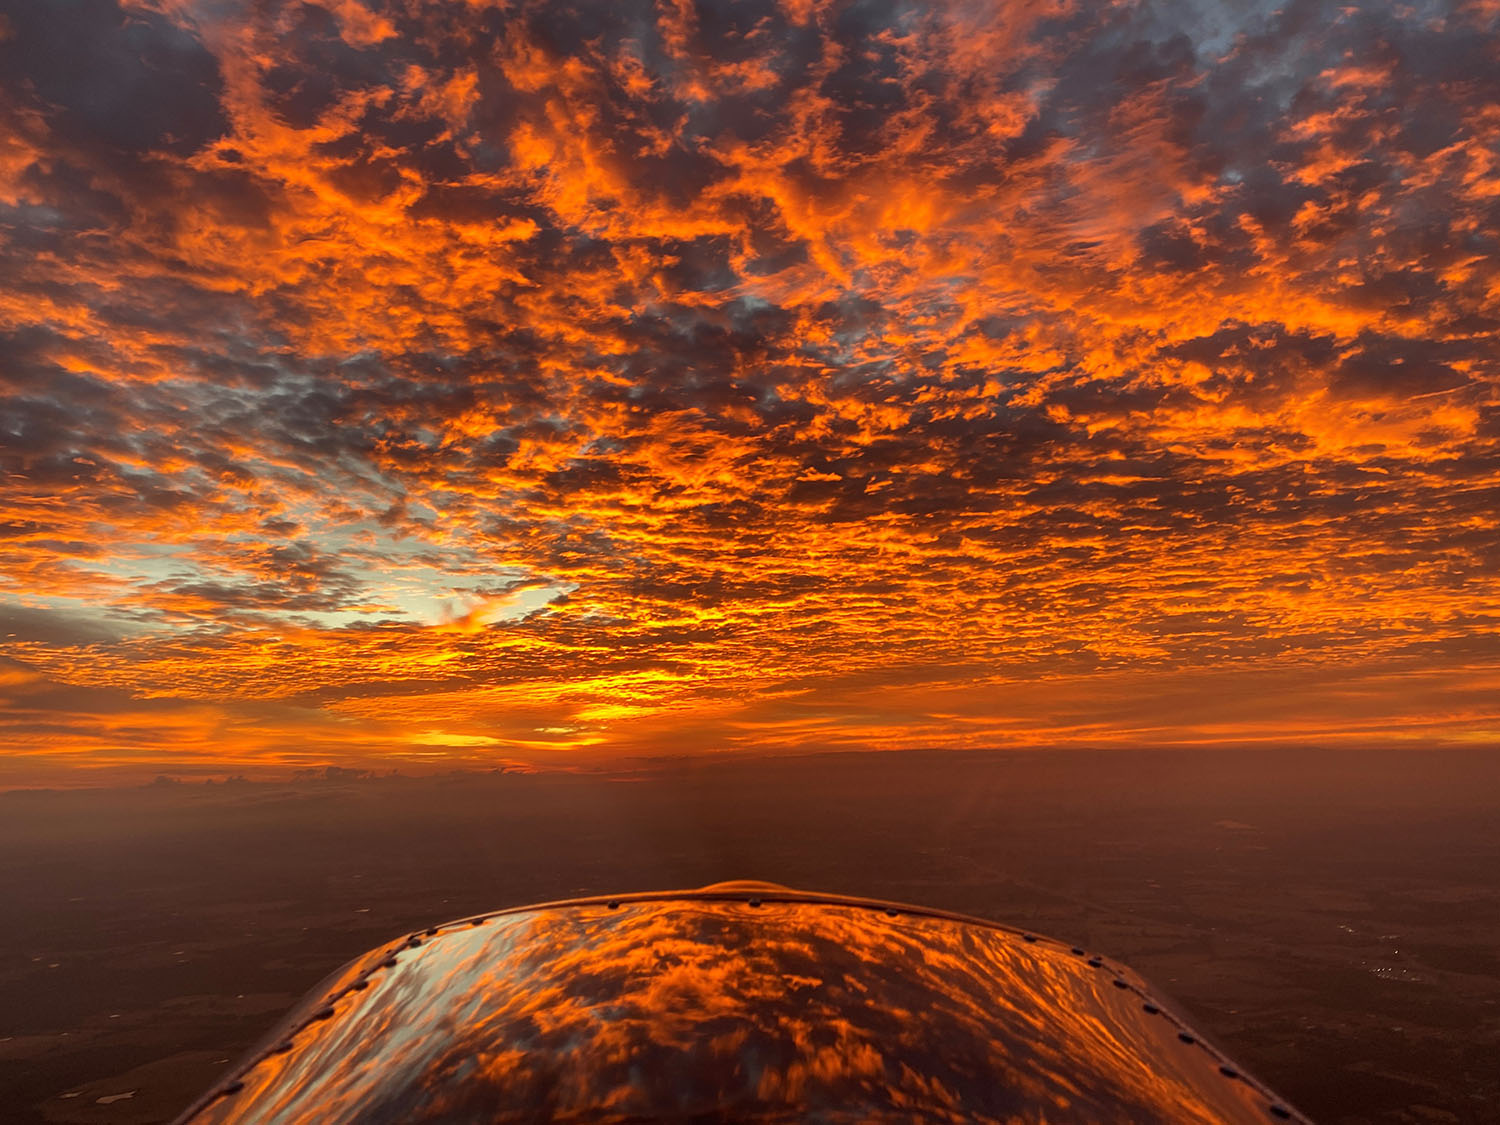 Top 25 Plane Photos From Plane & Pilot's Your Flying World Contest